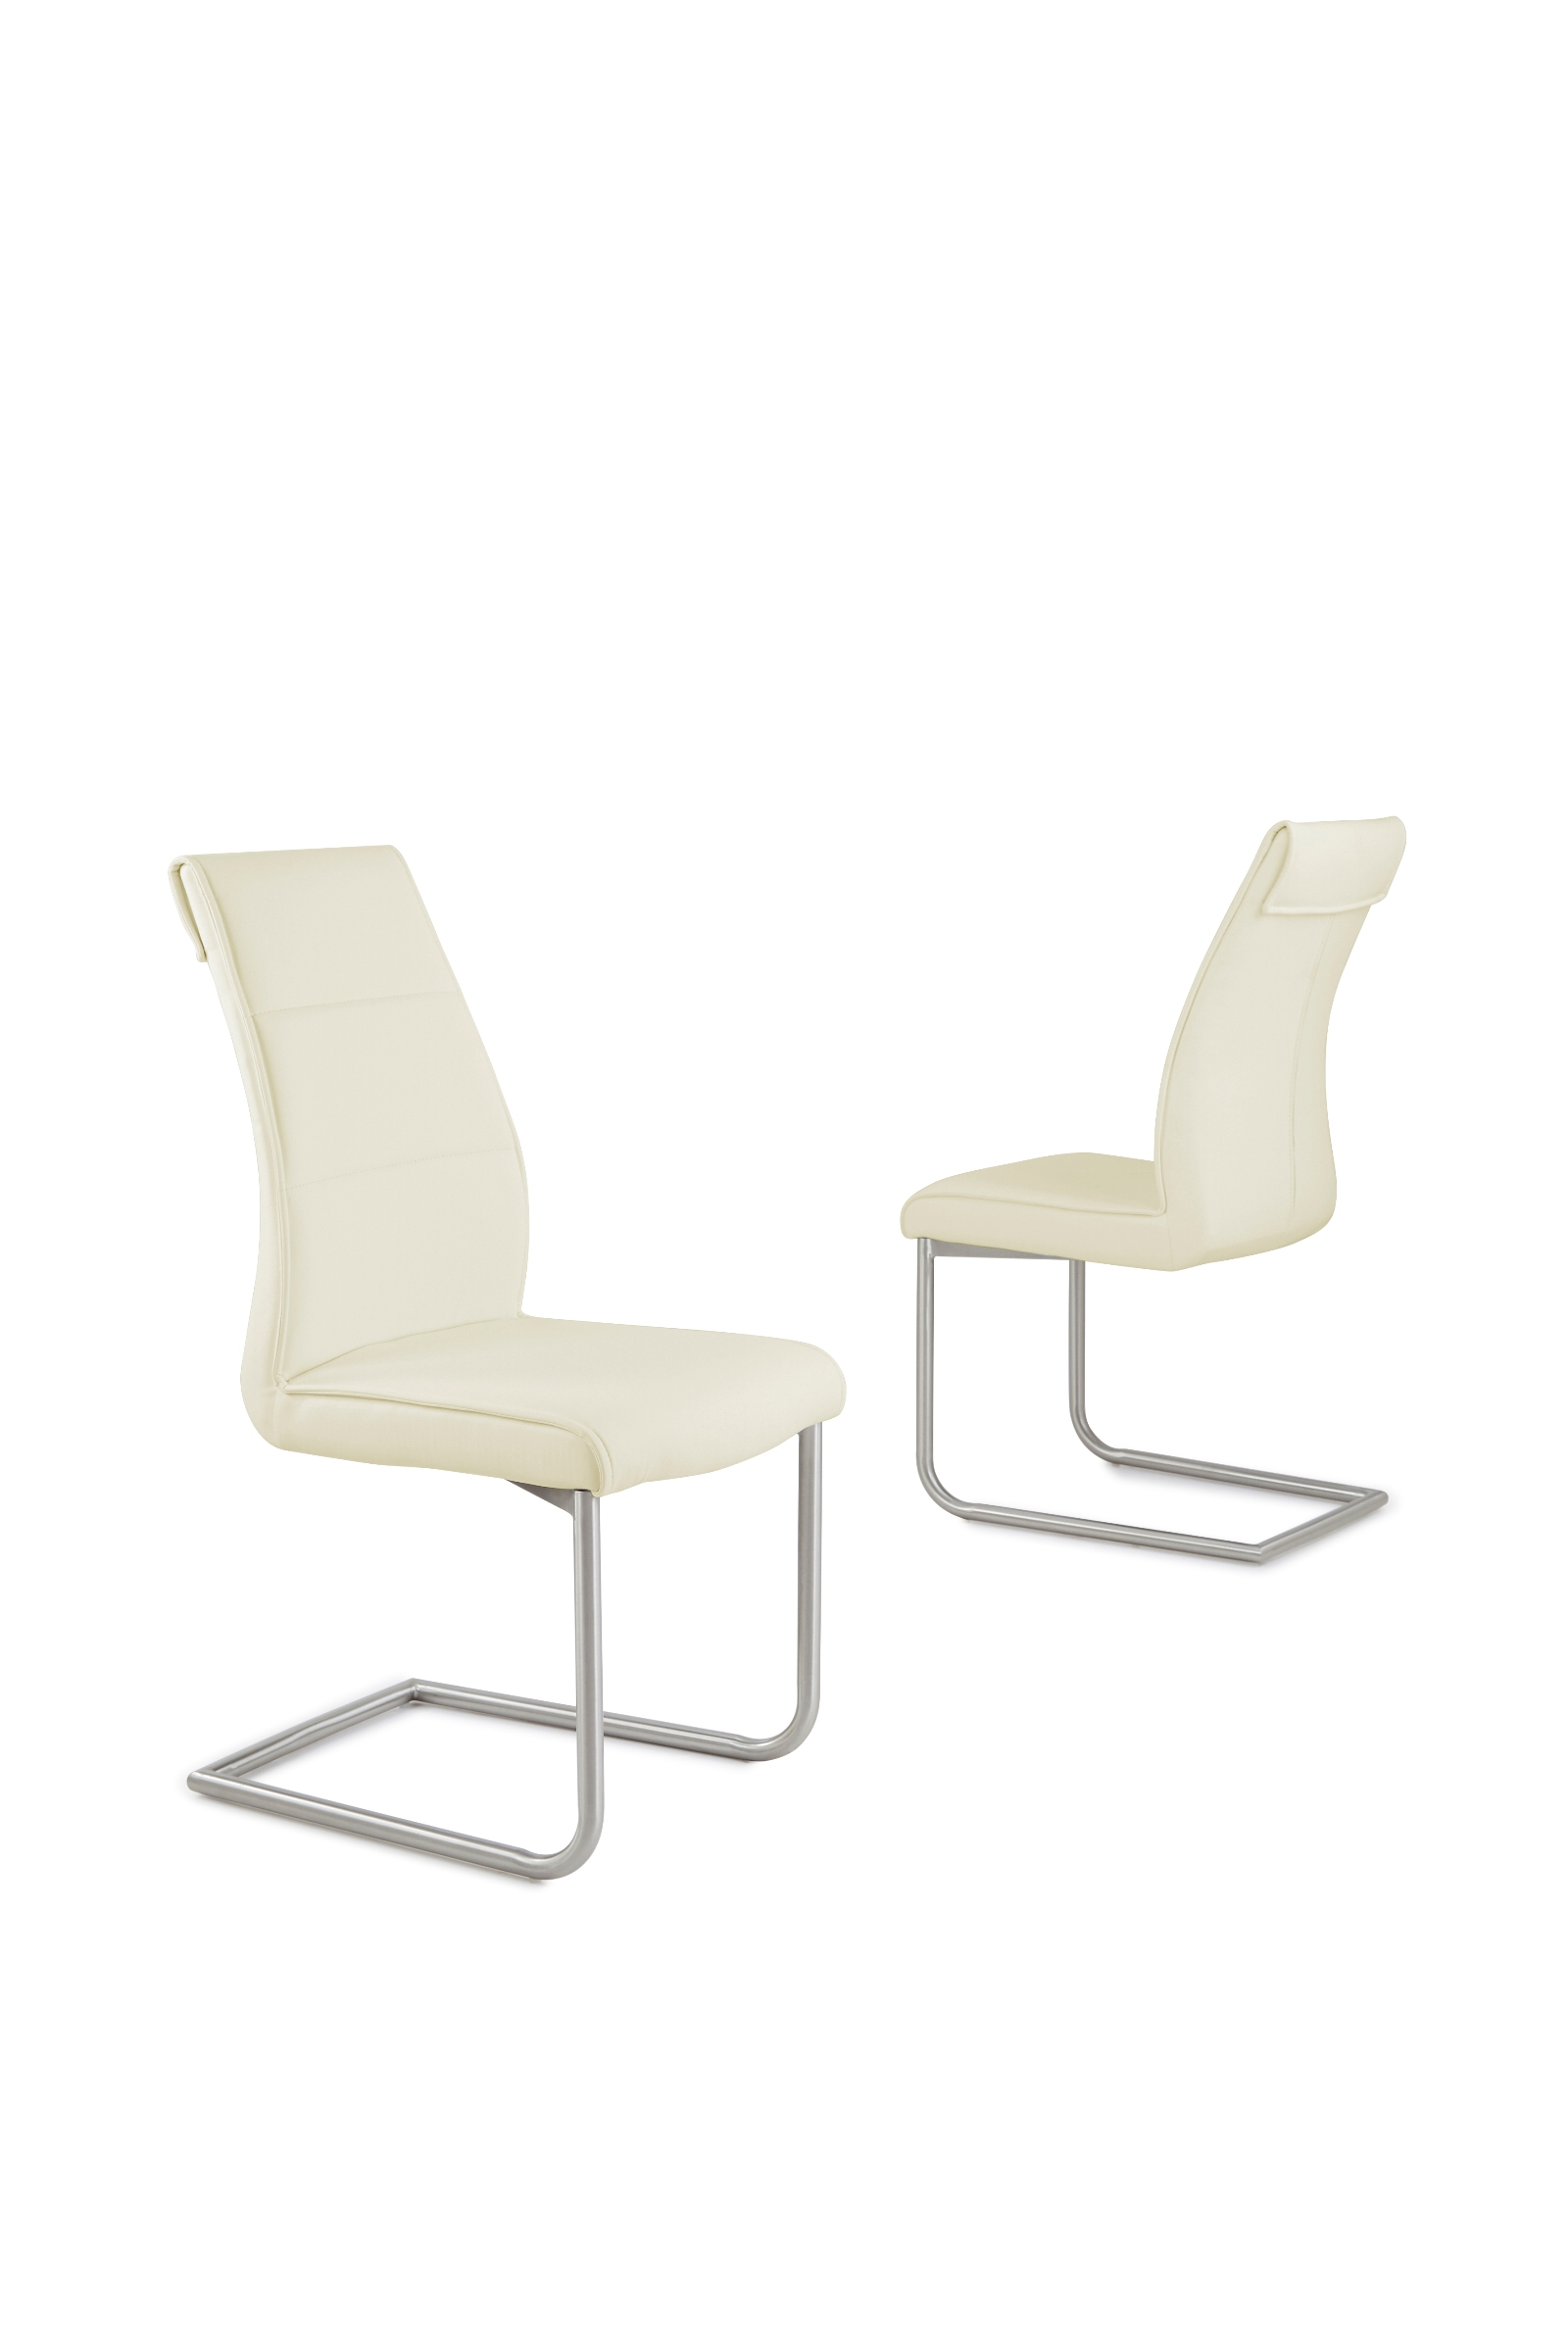 Zayno Cream Chair CH-6652